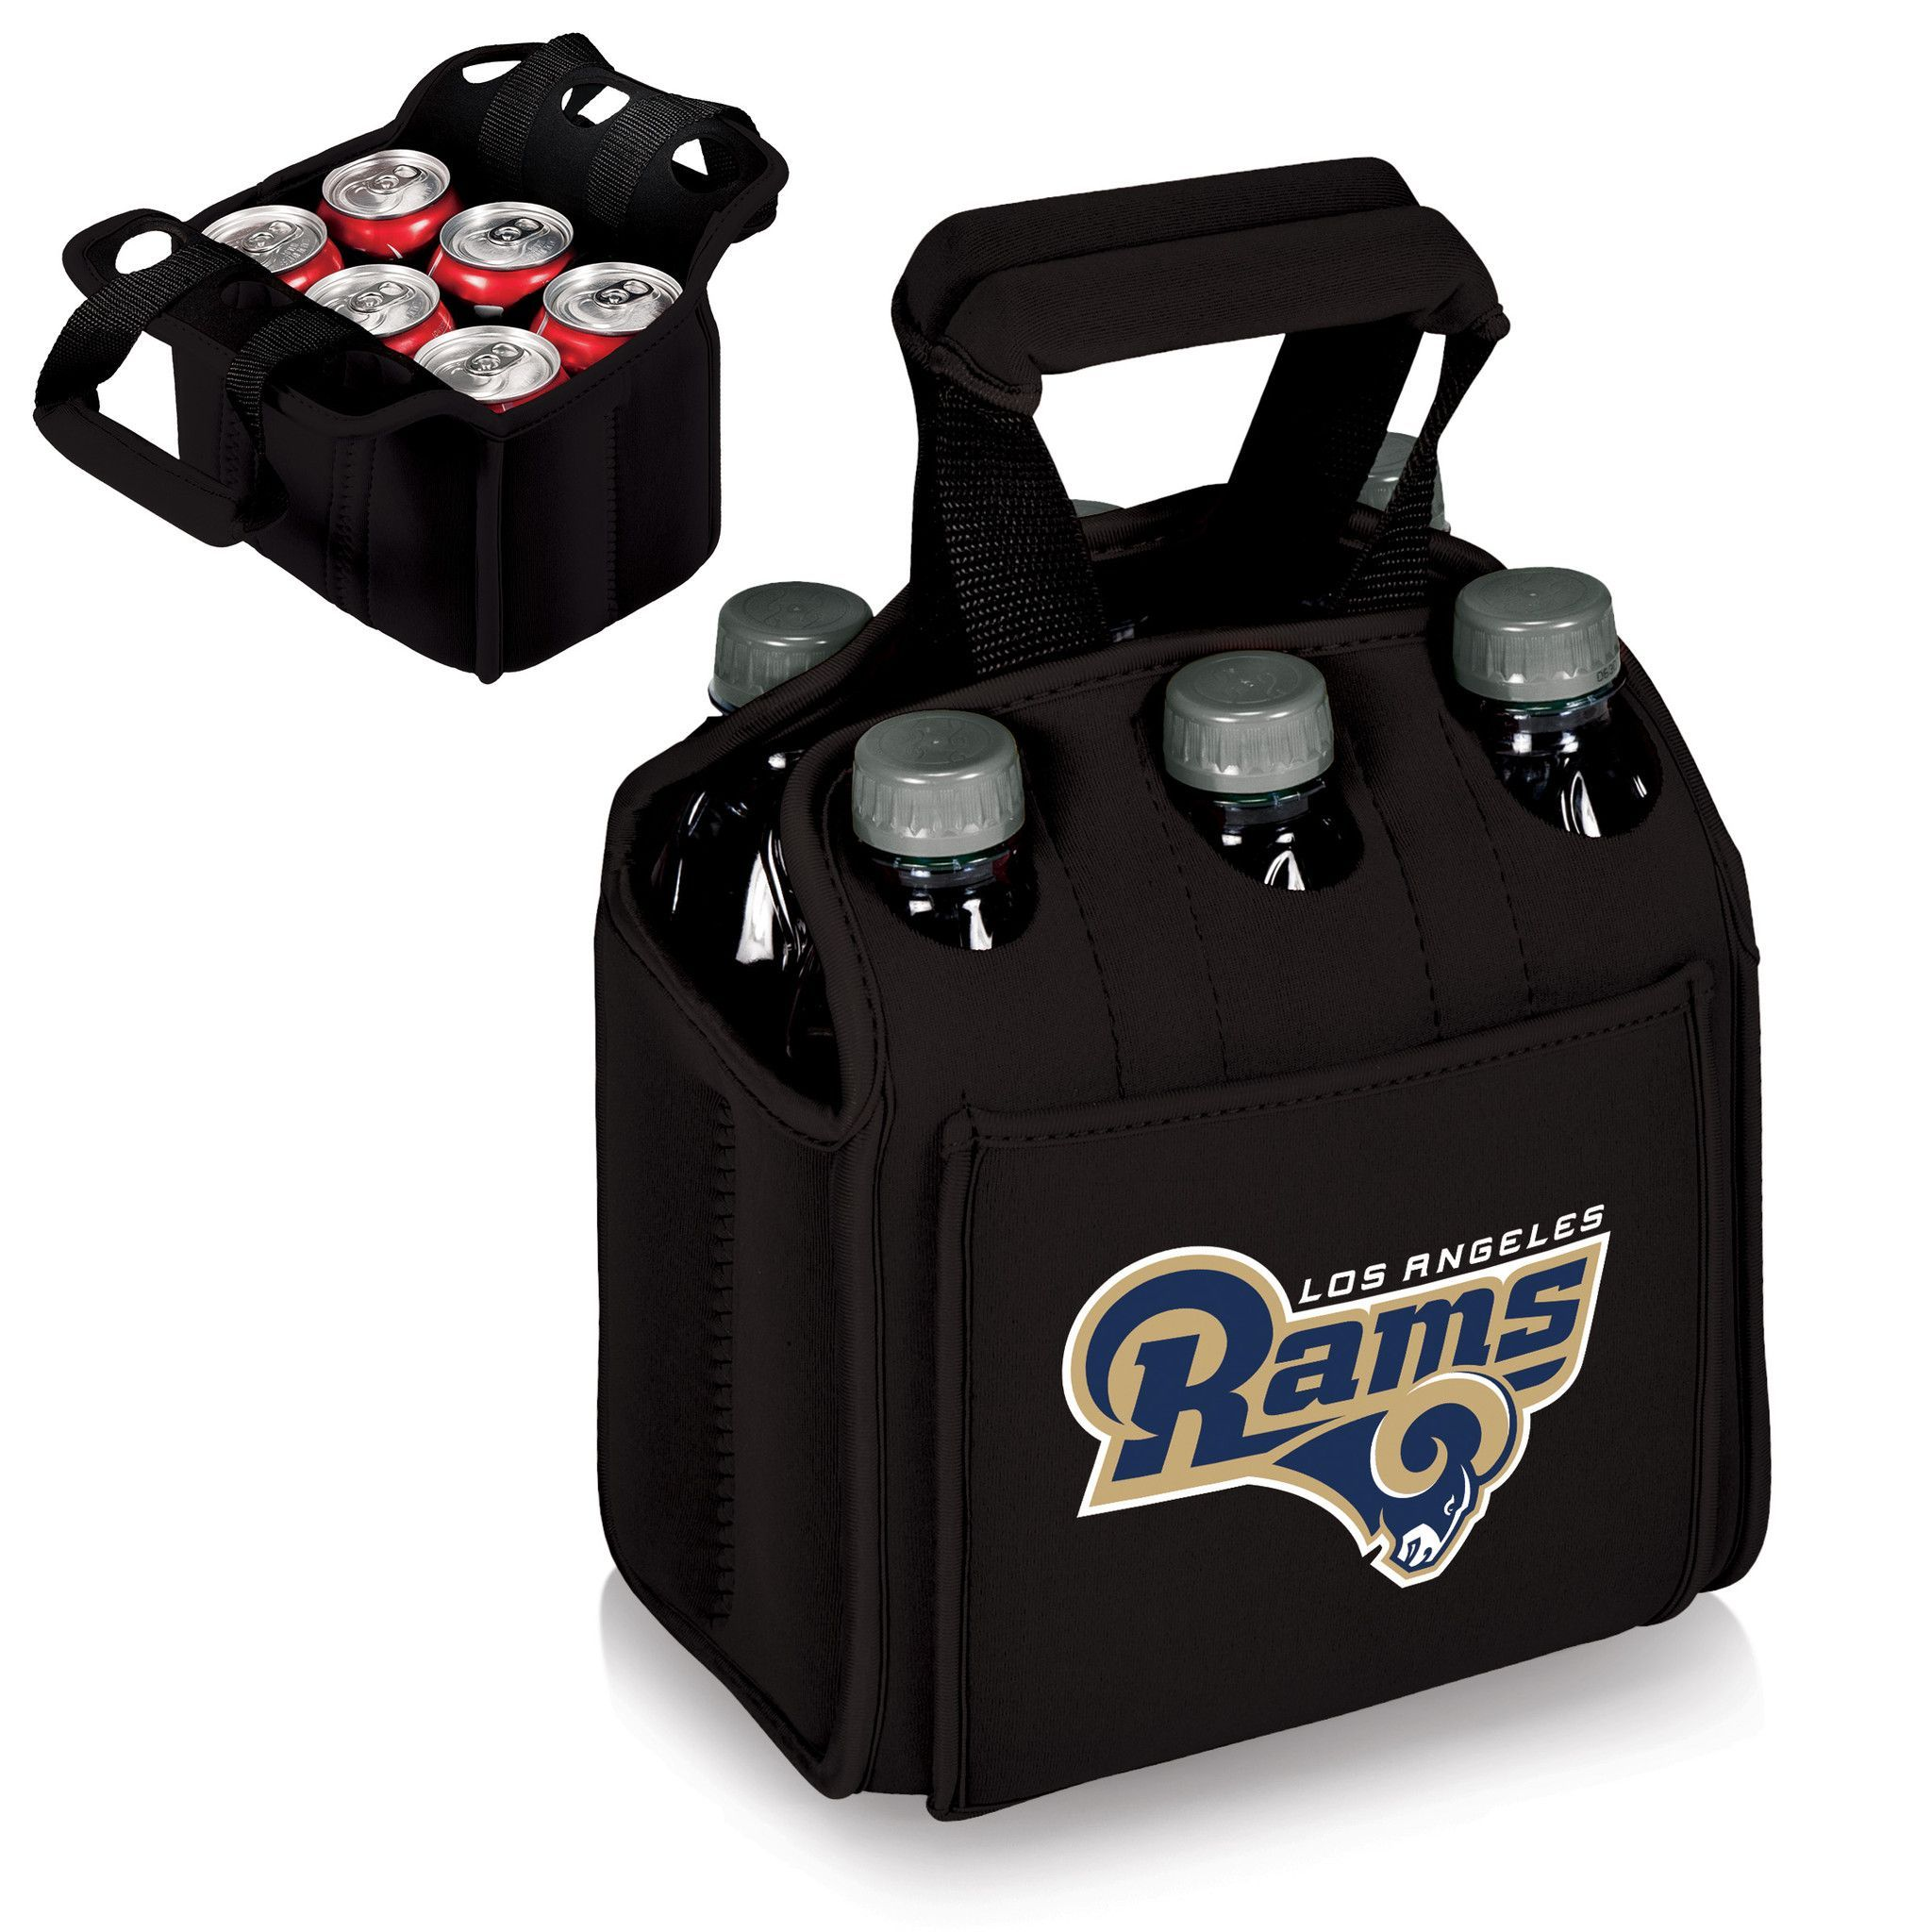 The Los Angeles Rams Six Pack Cooler keeps a 6-pack cold and easy to carry